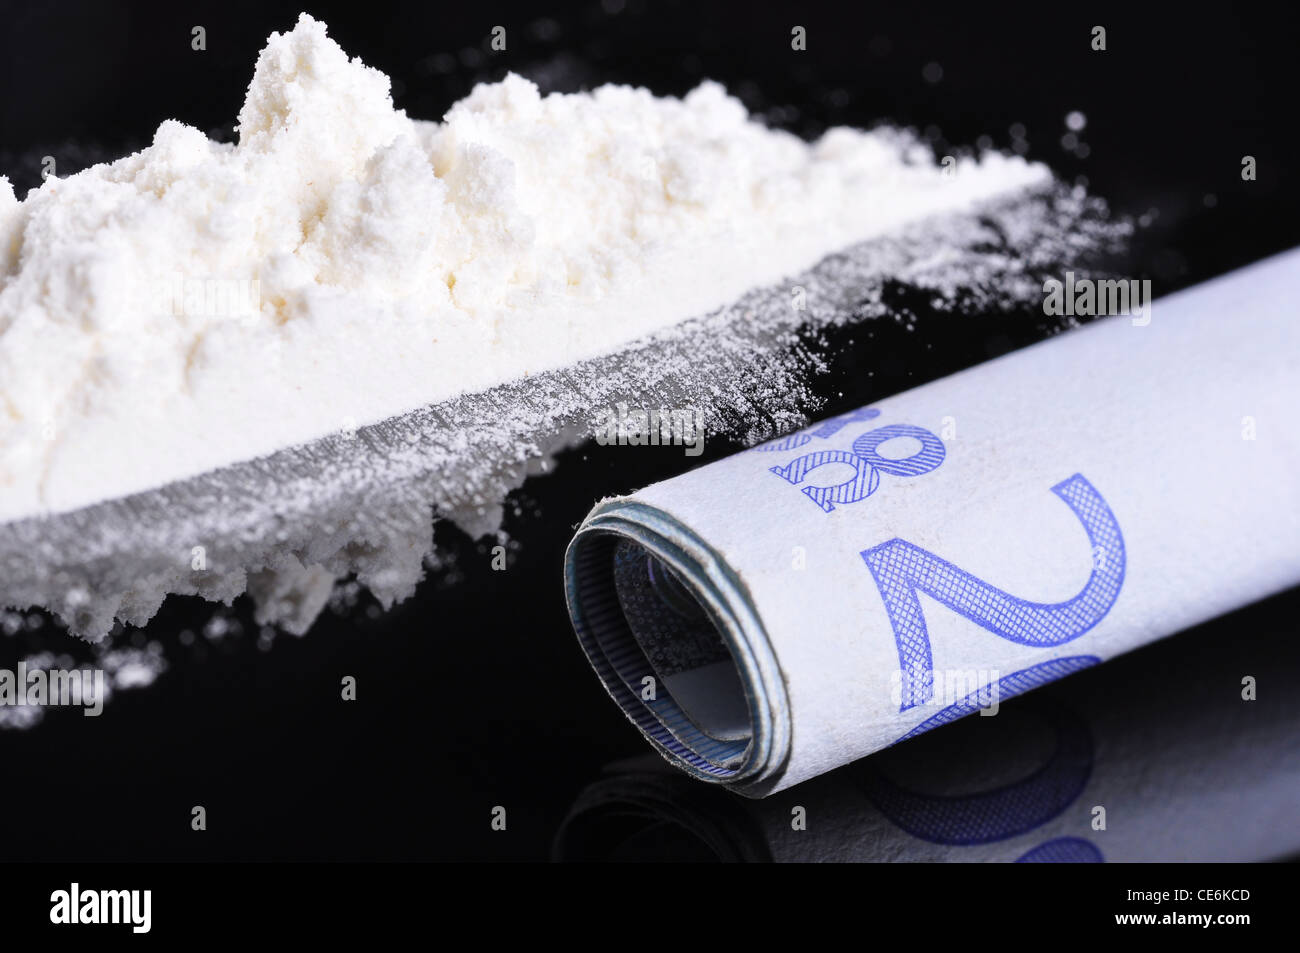 A bank note next to a line of cocaine, ready to be snorted - Stock Image